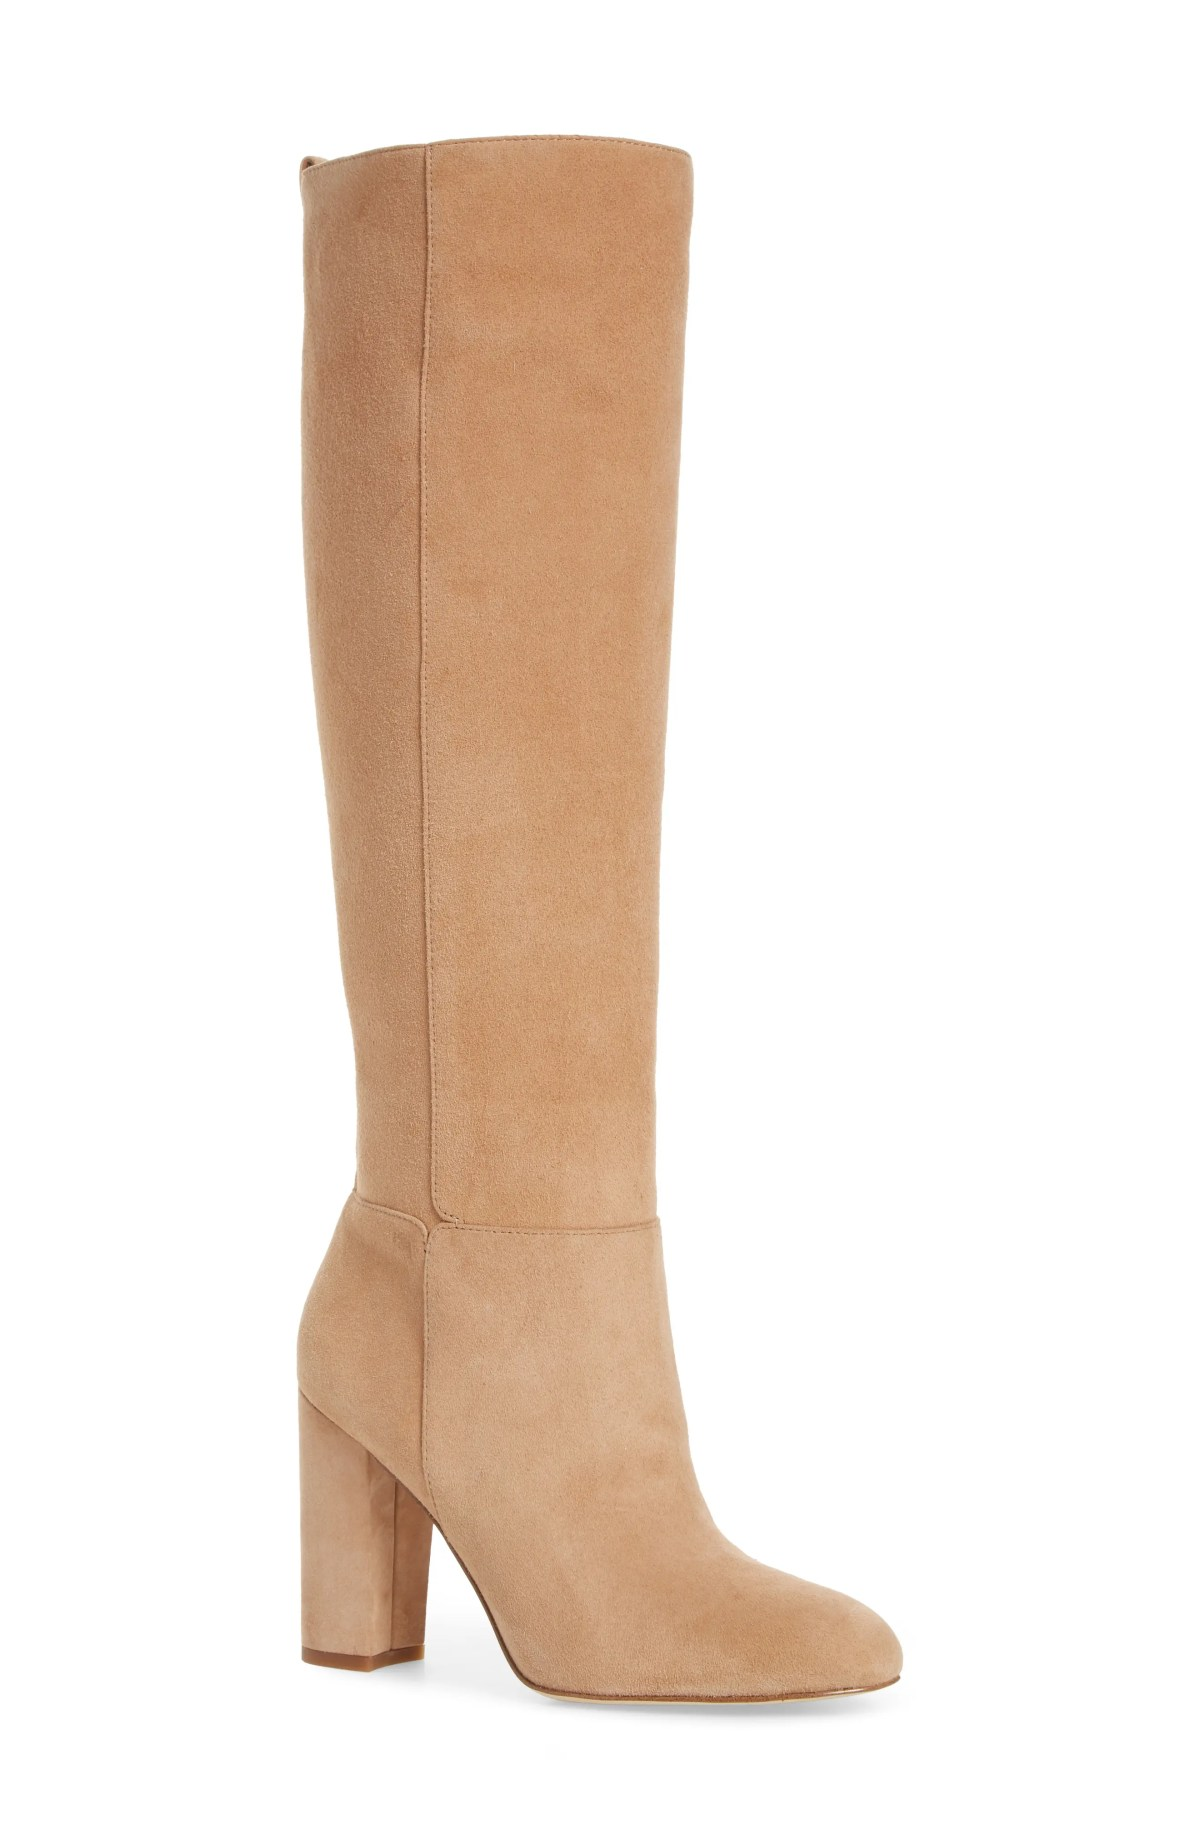 Caprice Knee-High Boot,                         Main,                         color, GOLDEN CARAMEL SUEDE